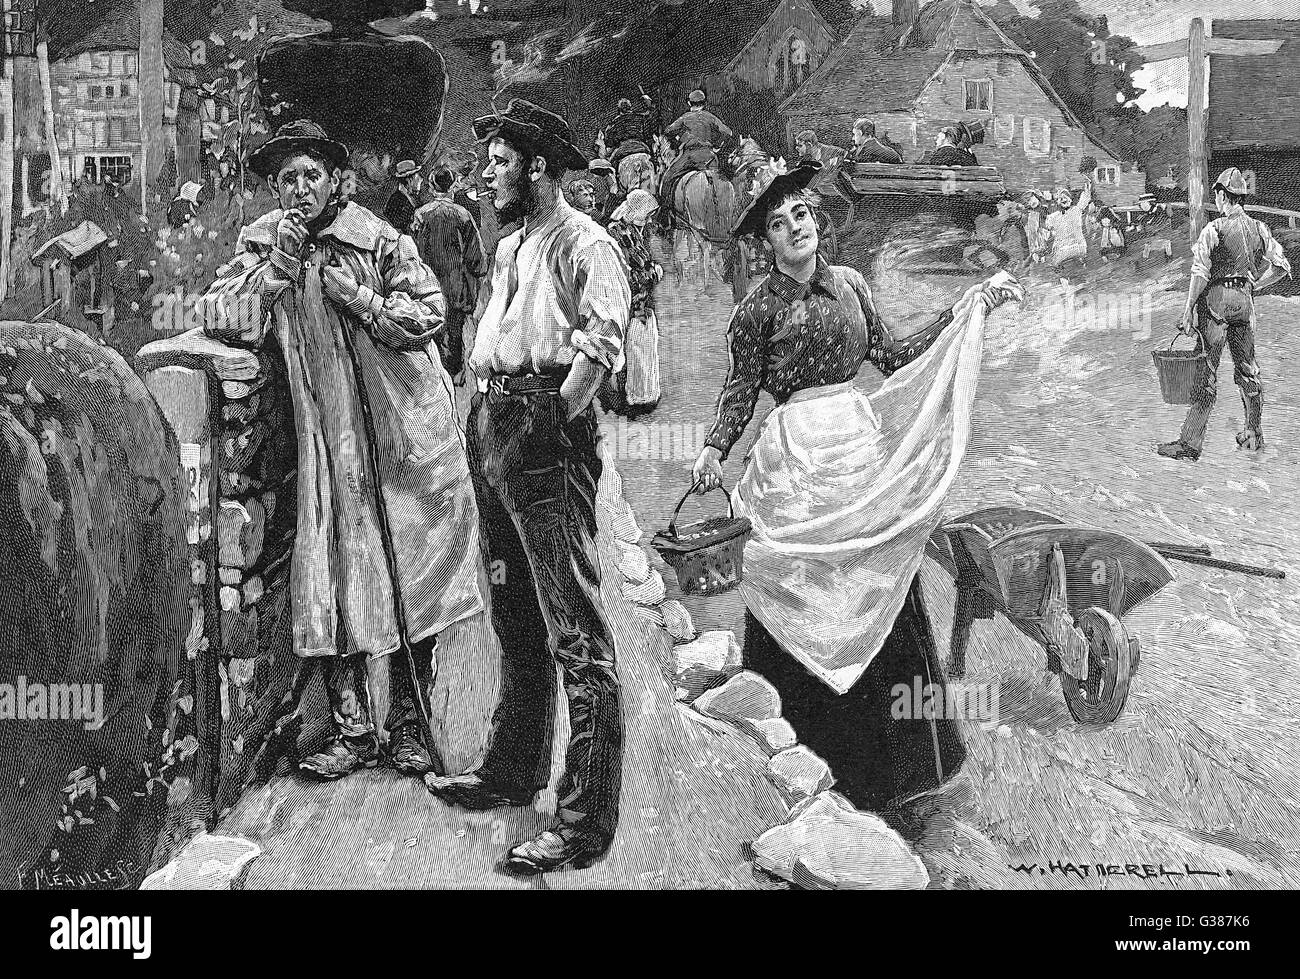 A village scene as country  folk go about their business        Date: 1893 - Stock Image